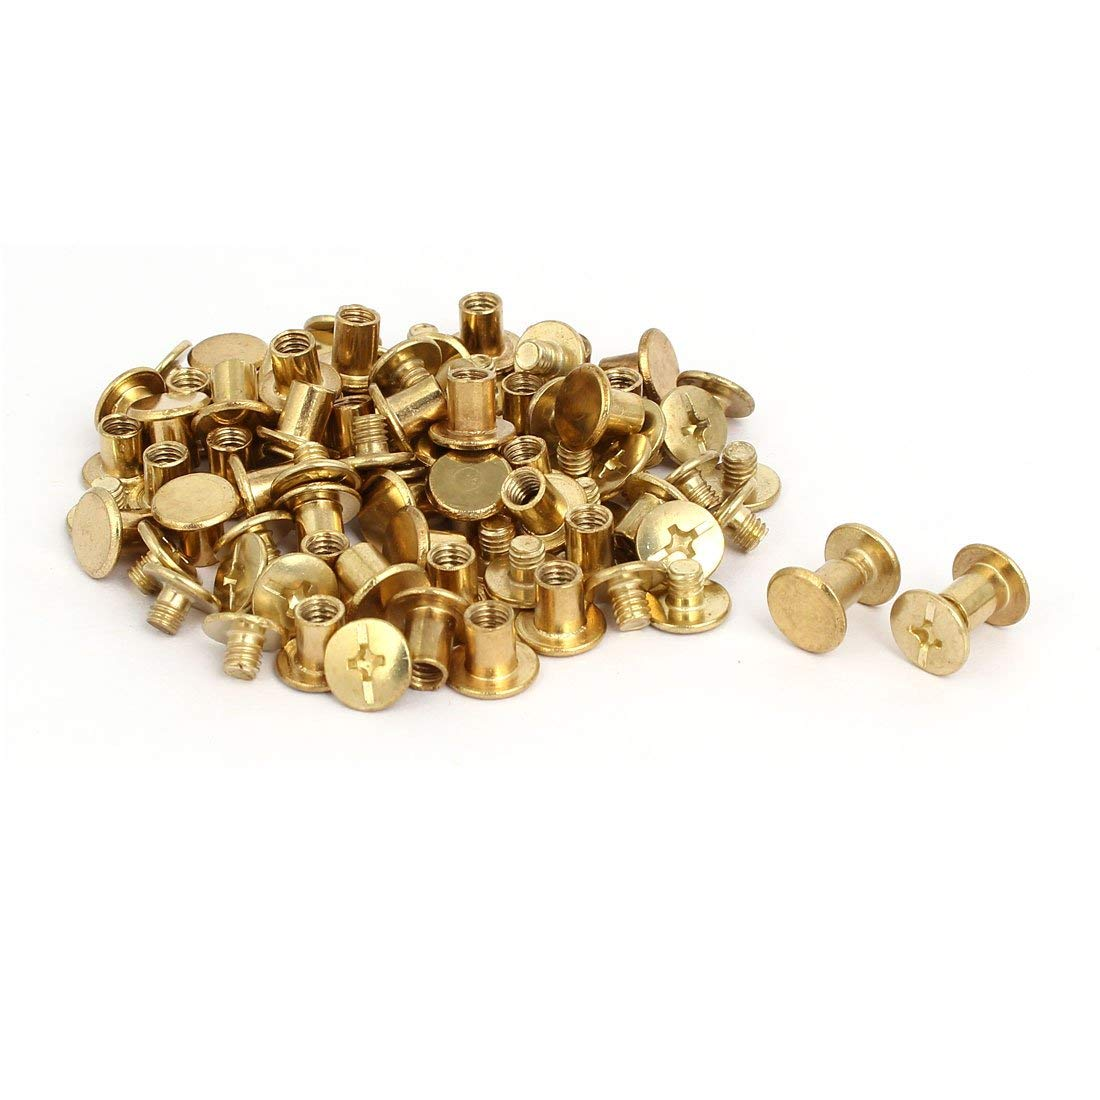 uxcell 5mmx6mm Binding Chicago Screw Posts Nuts Docking Rivets Brass Tone 5pcs